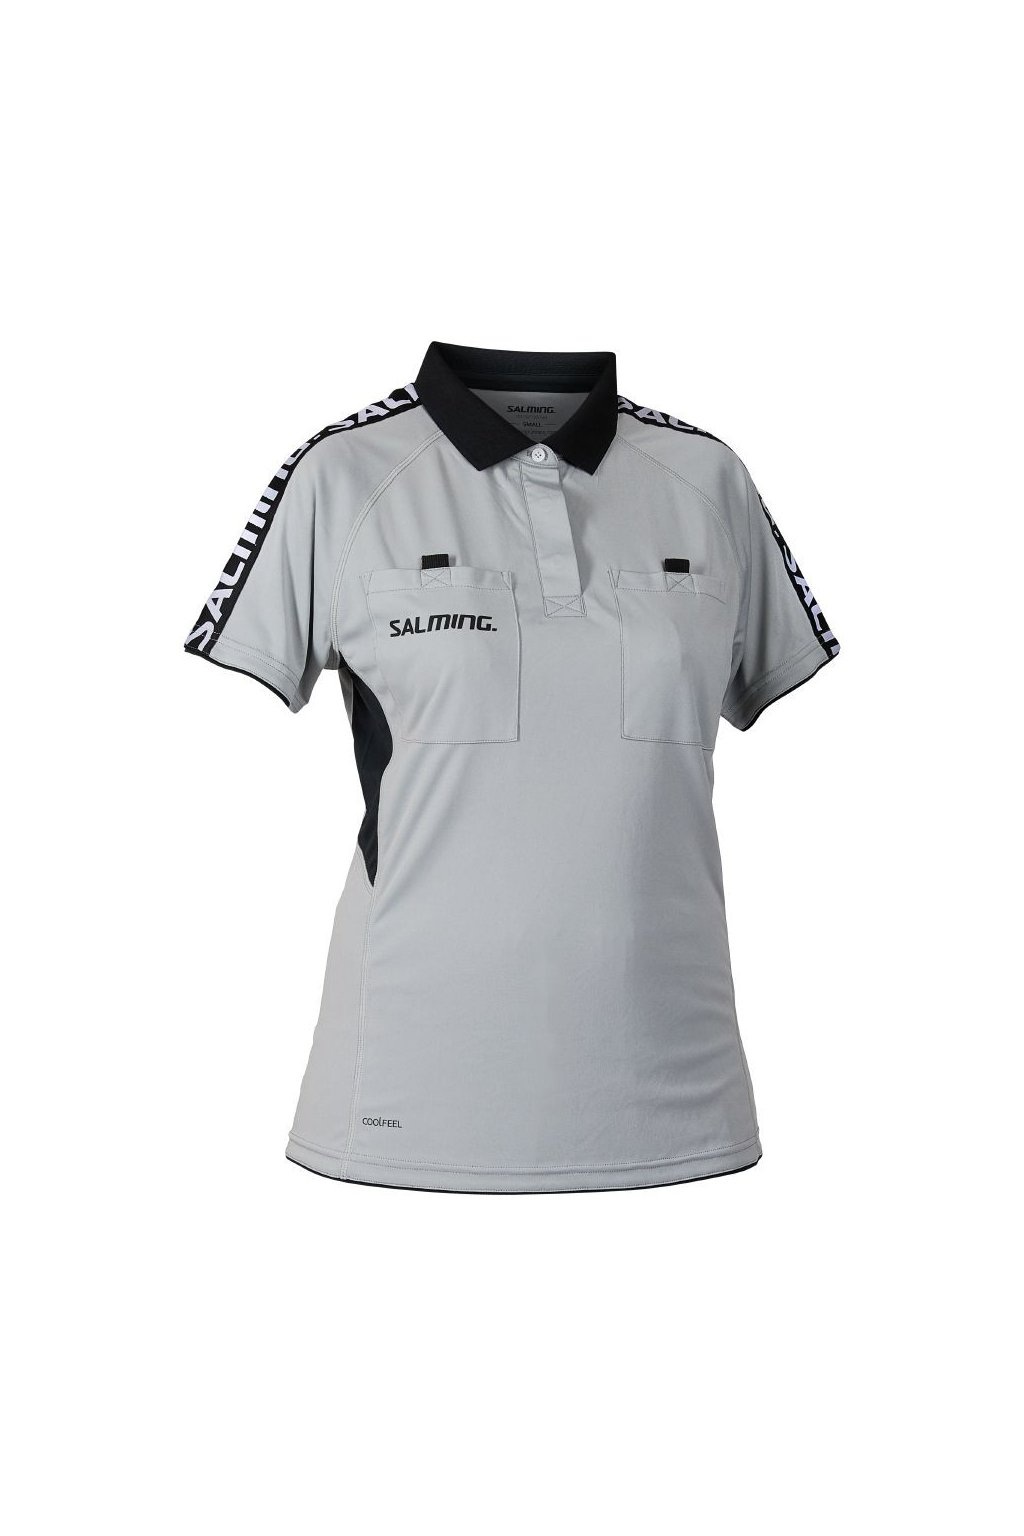 salming referee polo women (2)